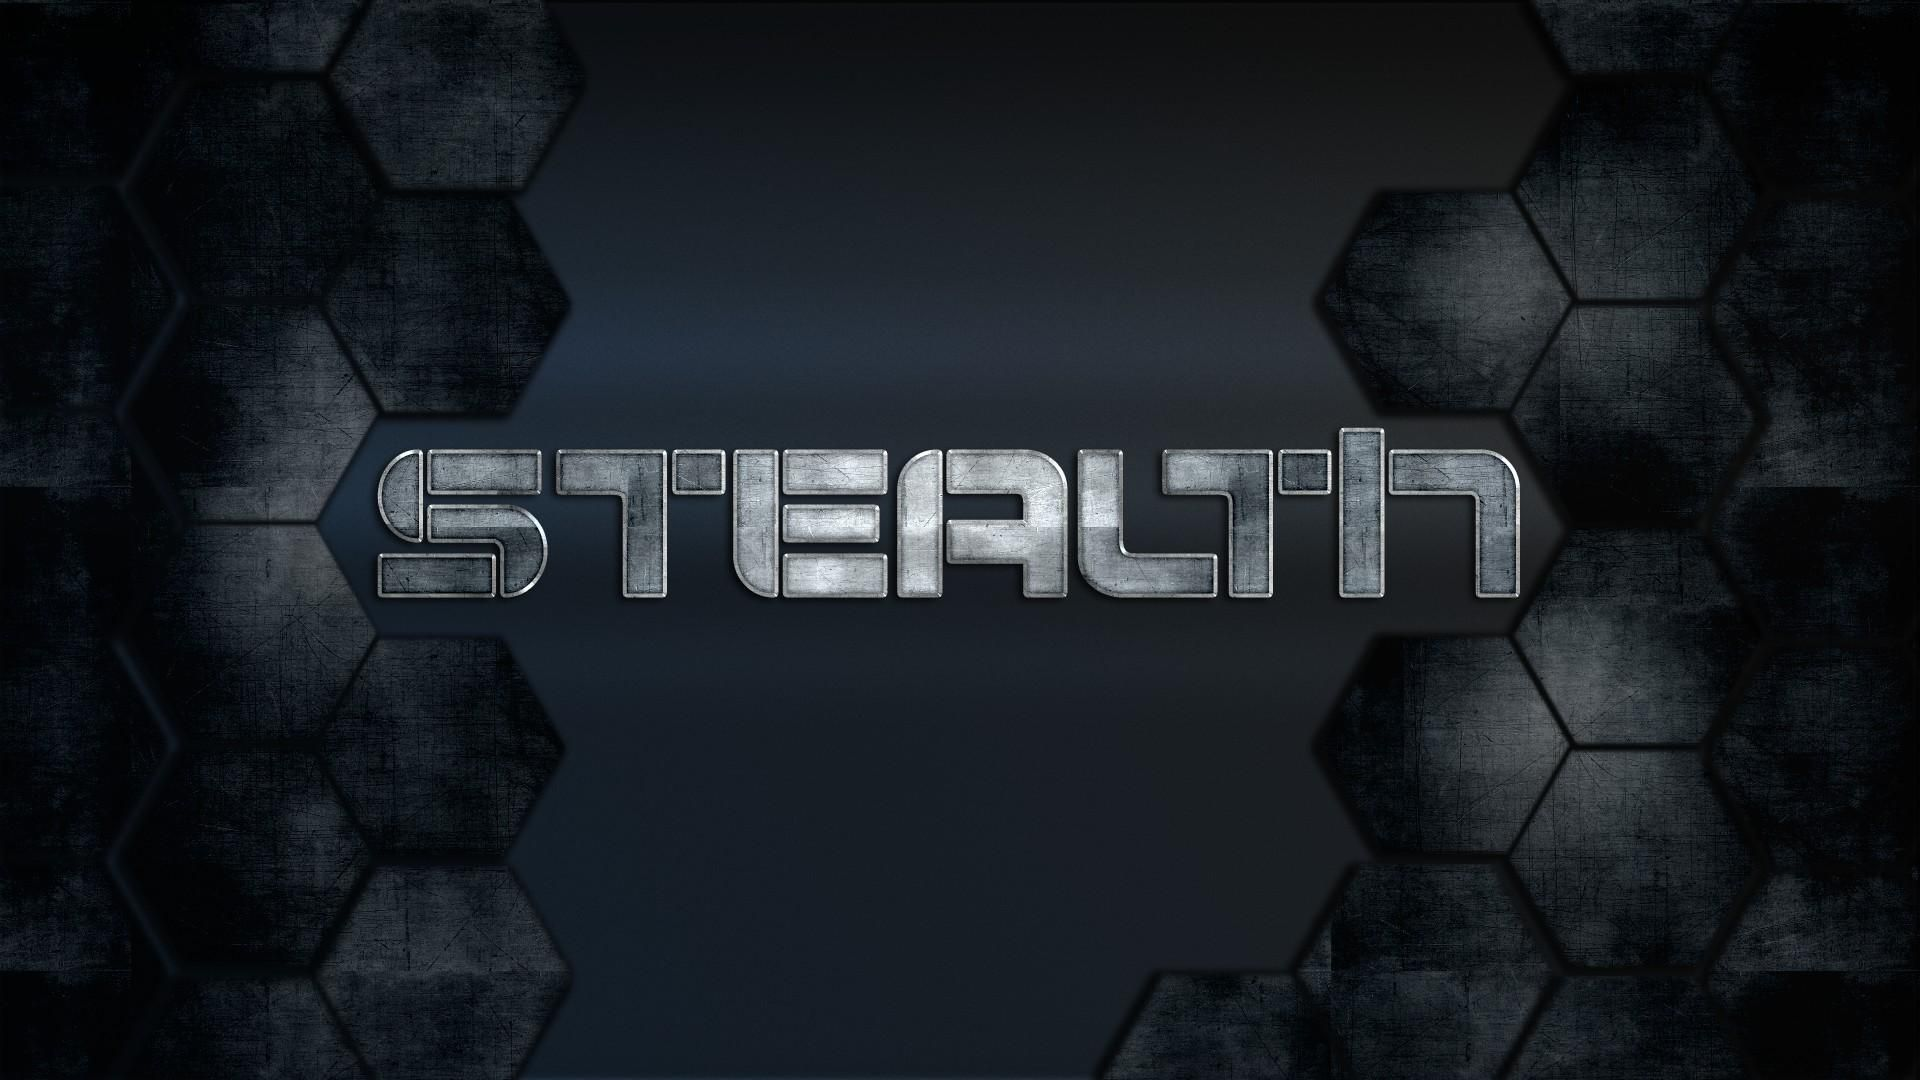 Stealth Wallpapers   Top Stealth Backgrounds   WallpaperAccess 1920x1080